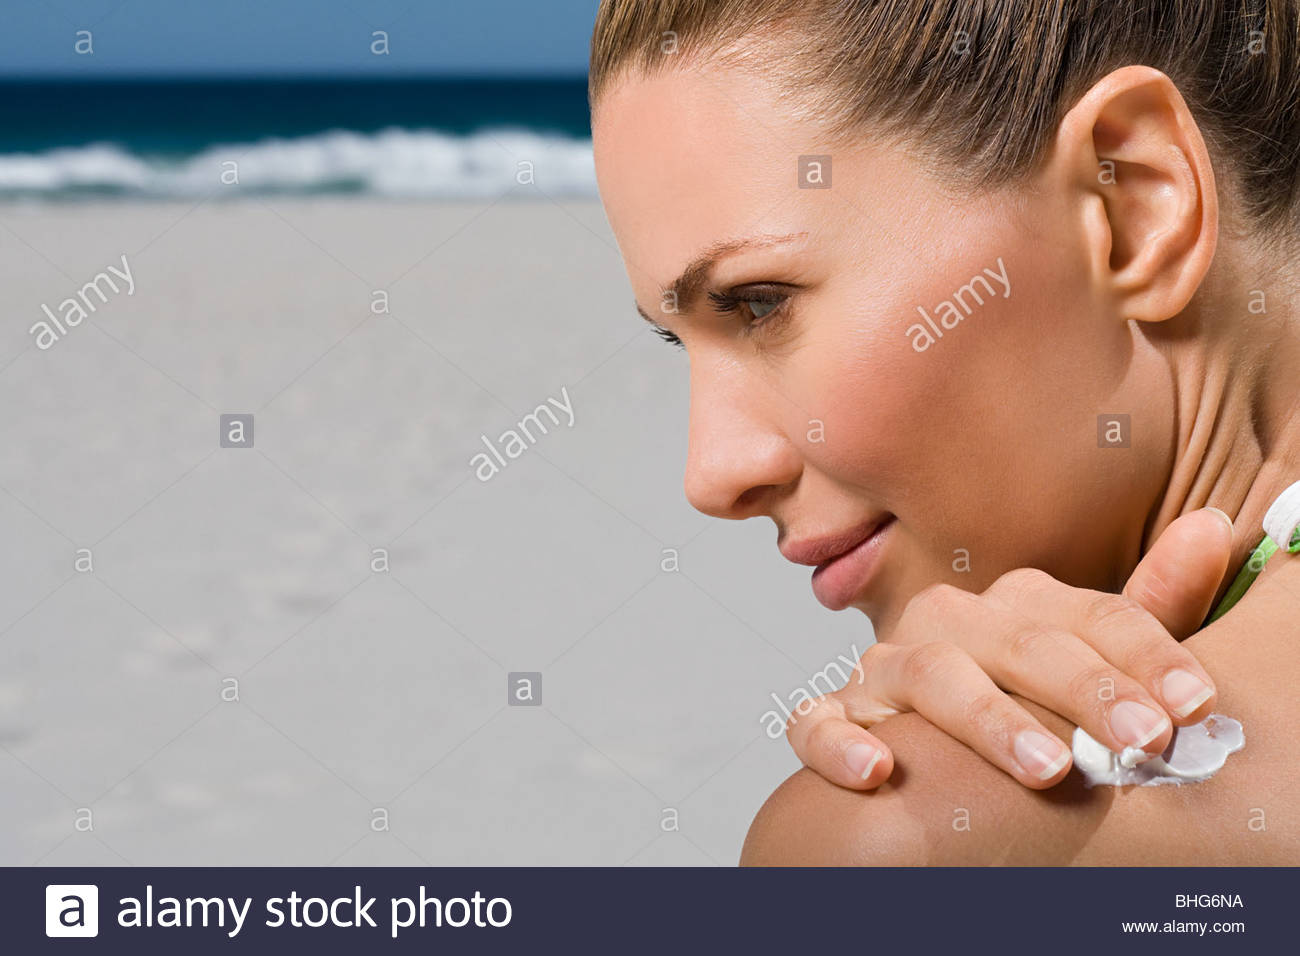 Woman sitting on beach rubbing sunblock onto shoulder - Stock Image